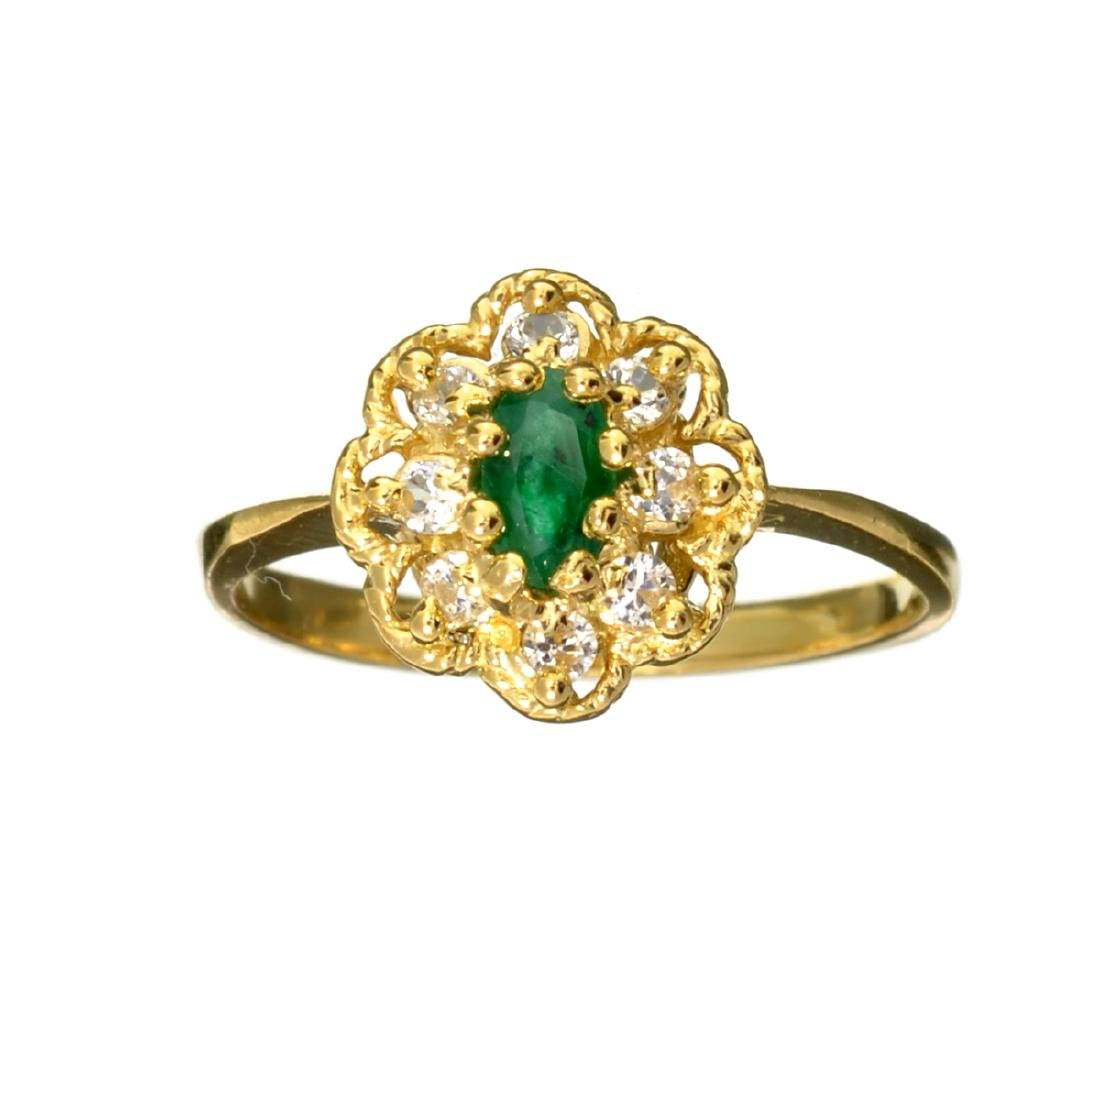 APP: 1k 14 kt. Gold, 0.41CT Oval Cut Emerald And